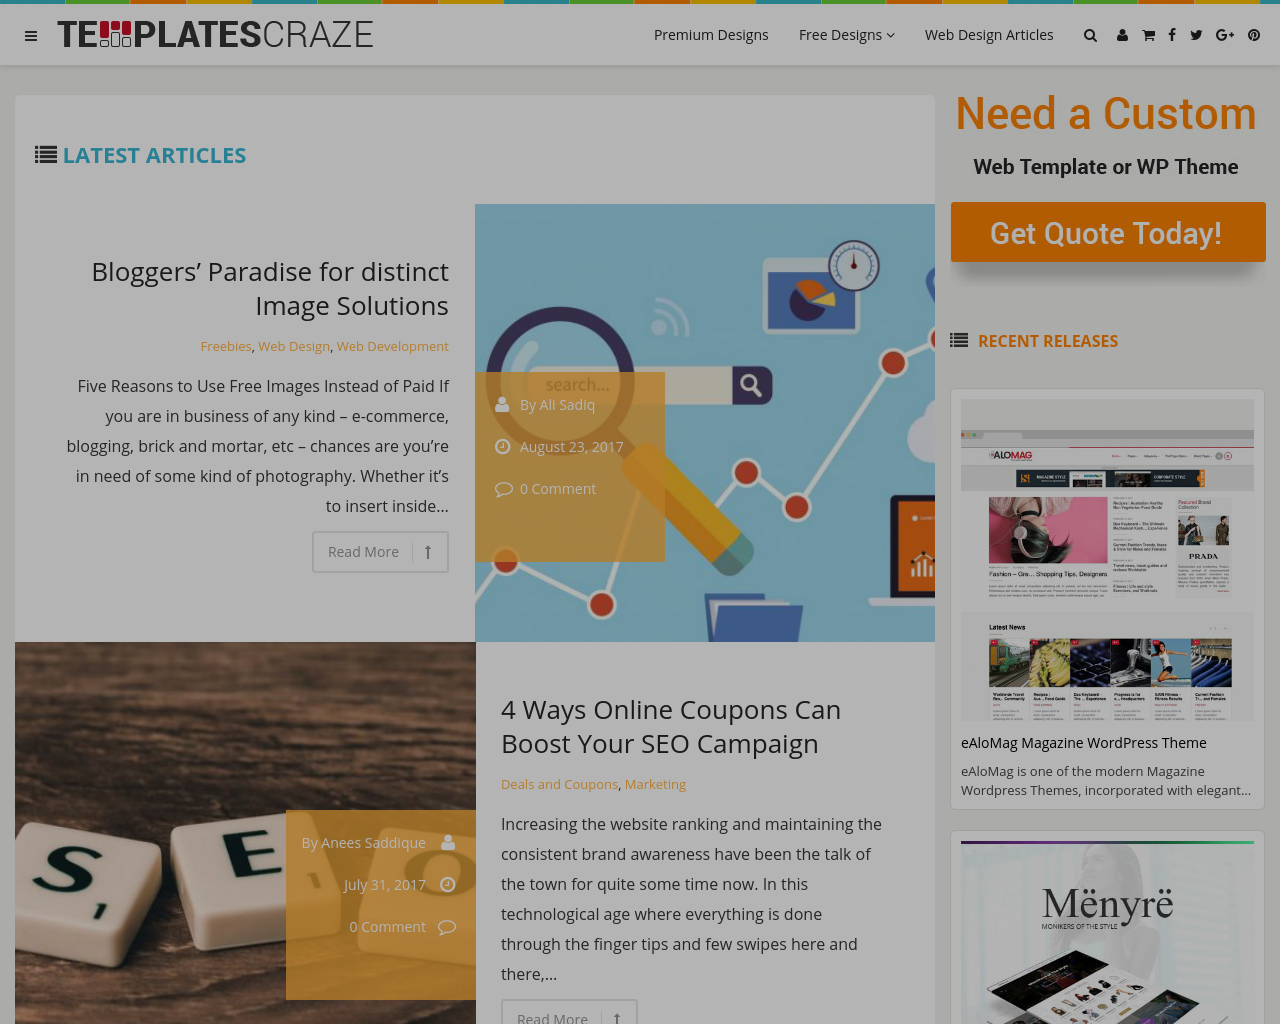 Templates-Craze-Advertising-Reviews-Pricing